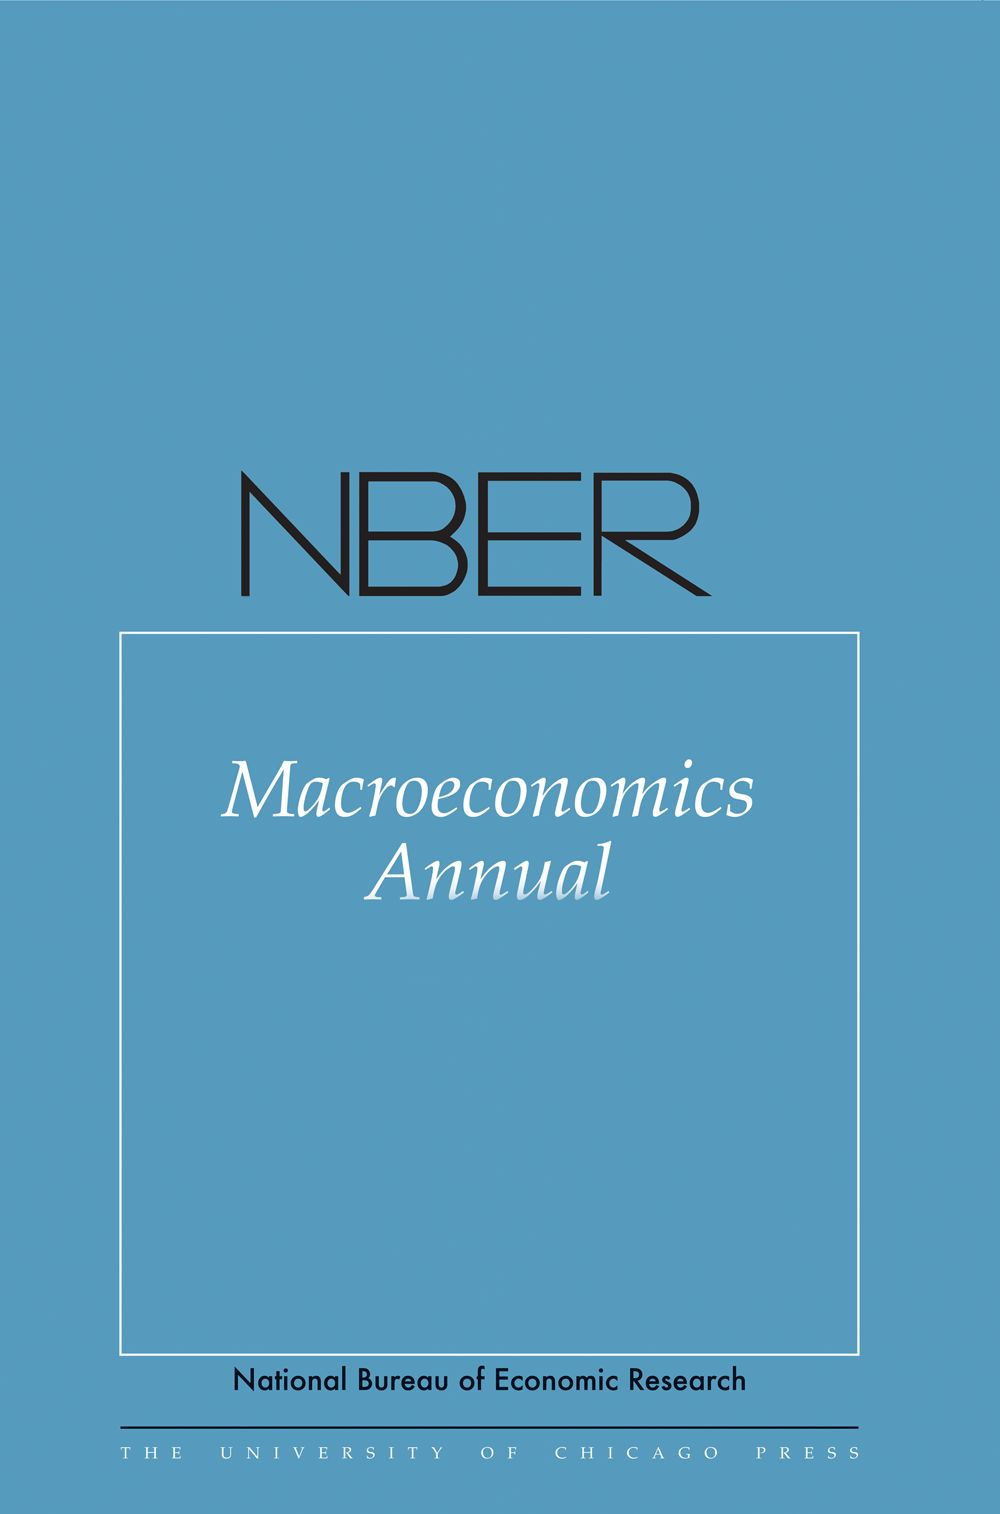 NBER Macroeconomics Annual 2014